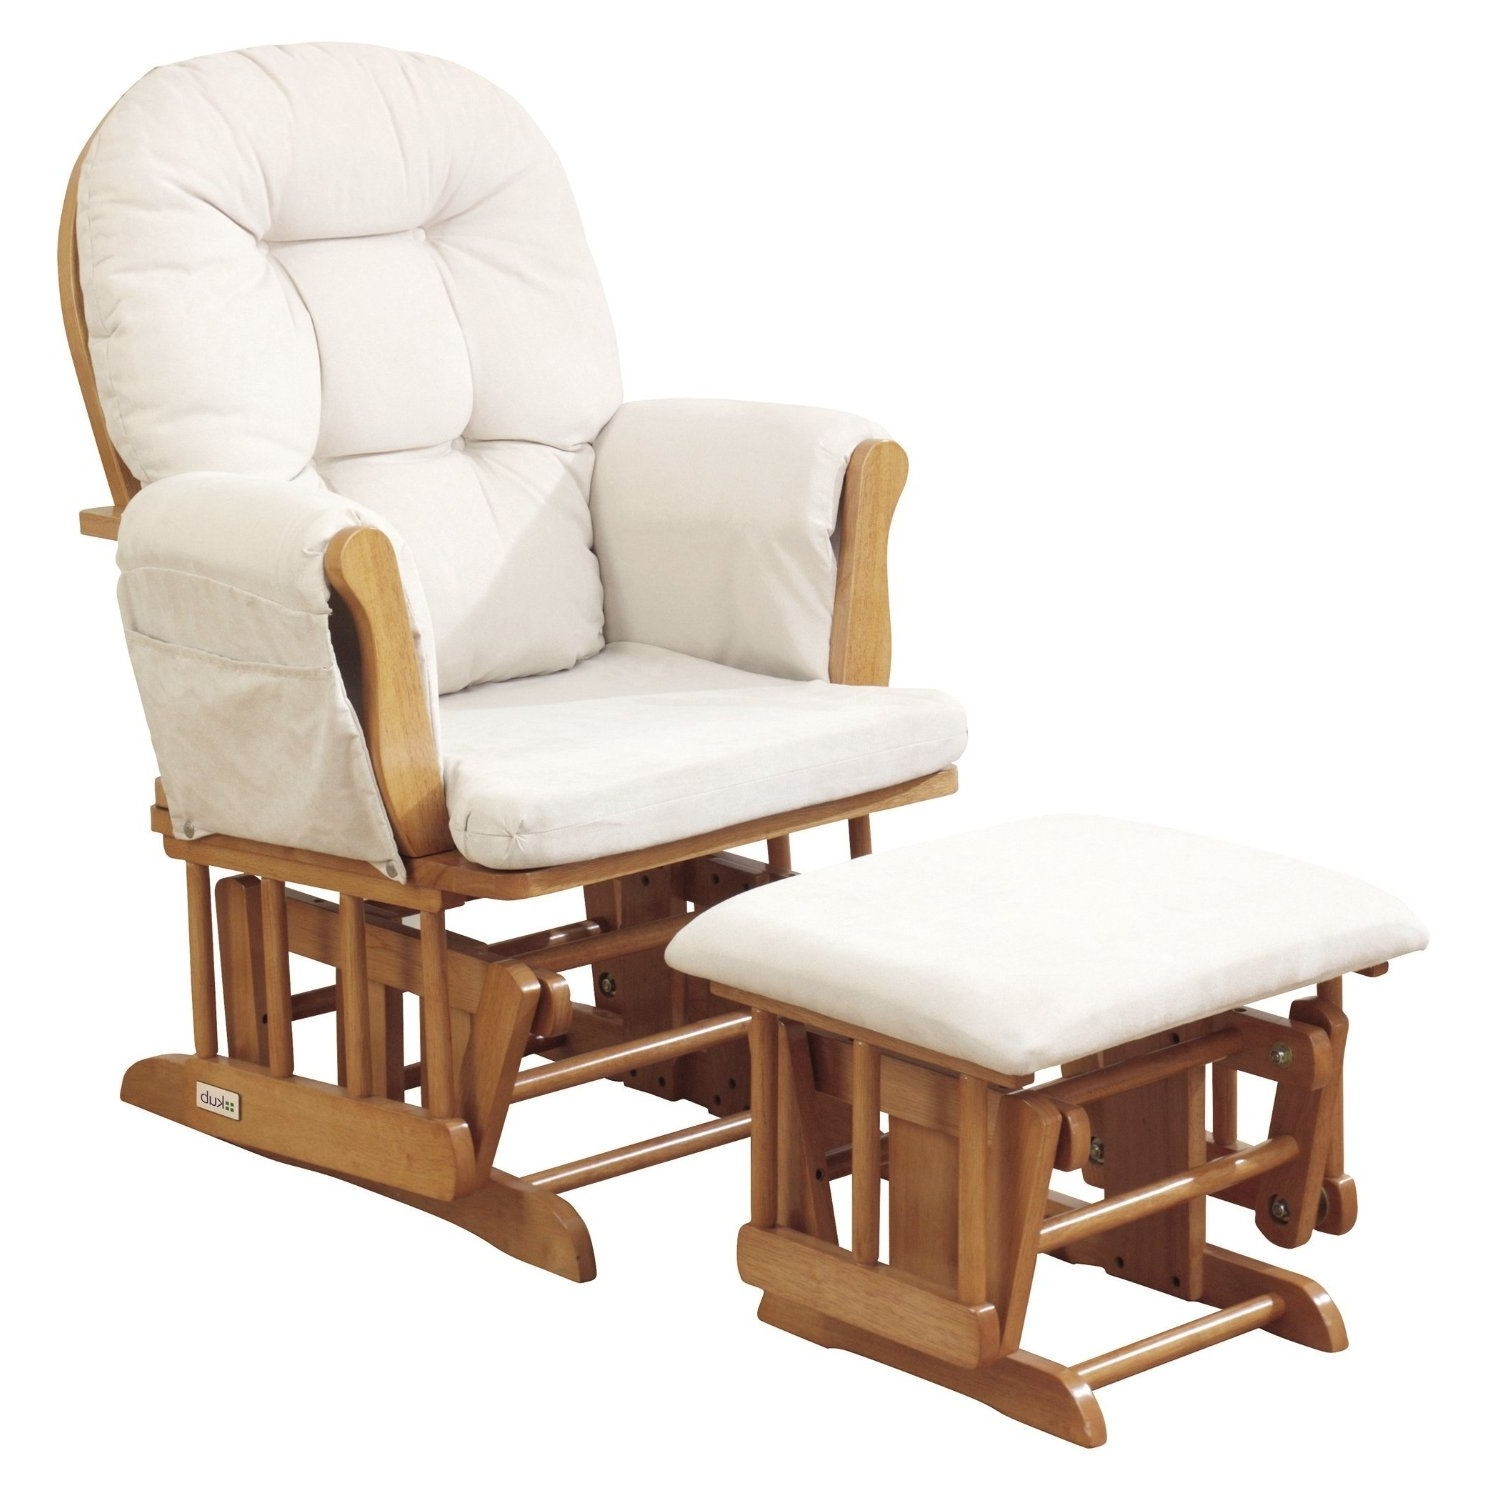 Preferred Rocking Chairs With Ottoman In Furniture: Glider Rocking Chair On Sale (View 17 of 20)